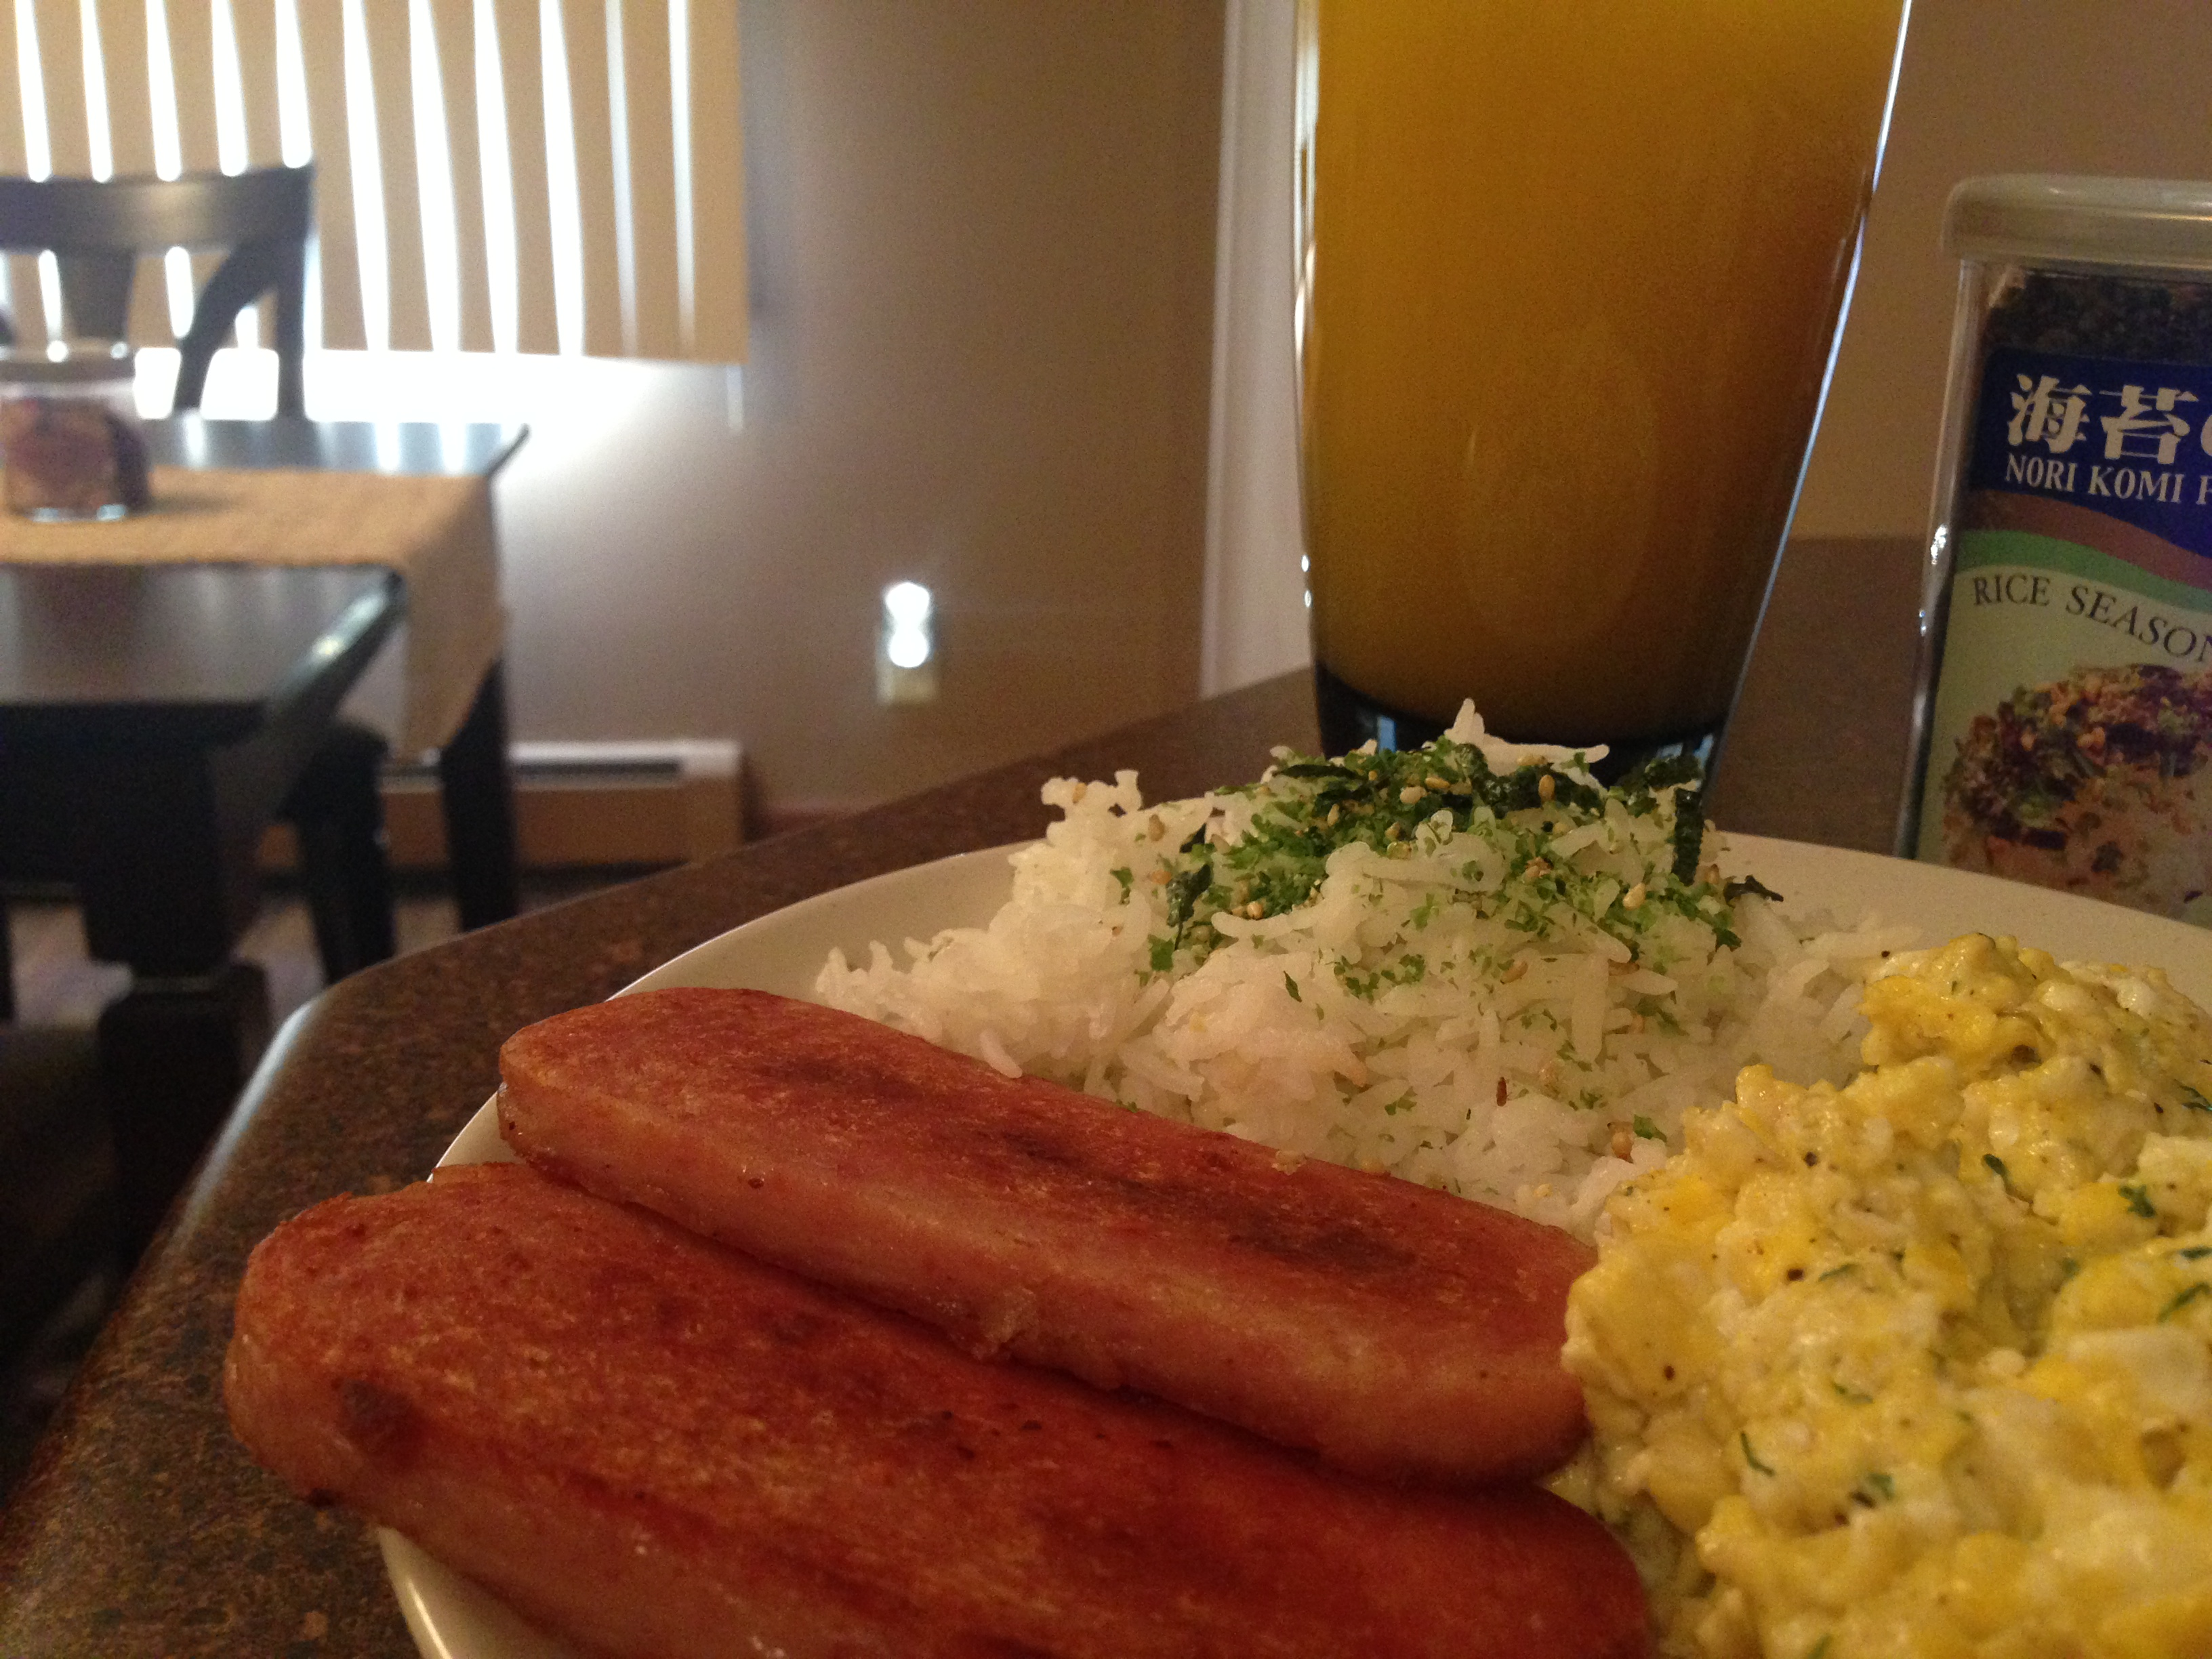 Spam Eggs and Rice